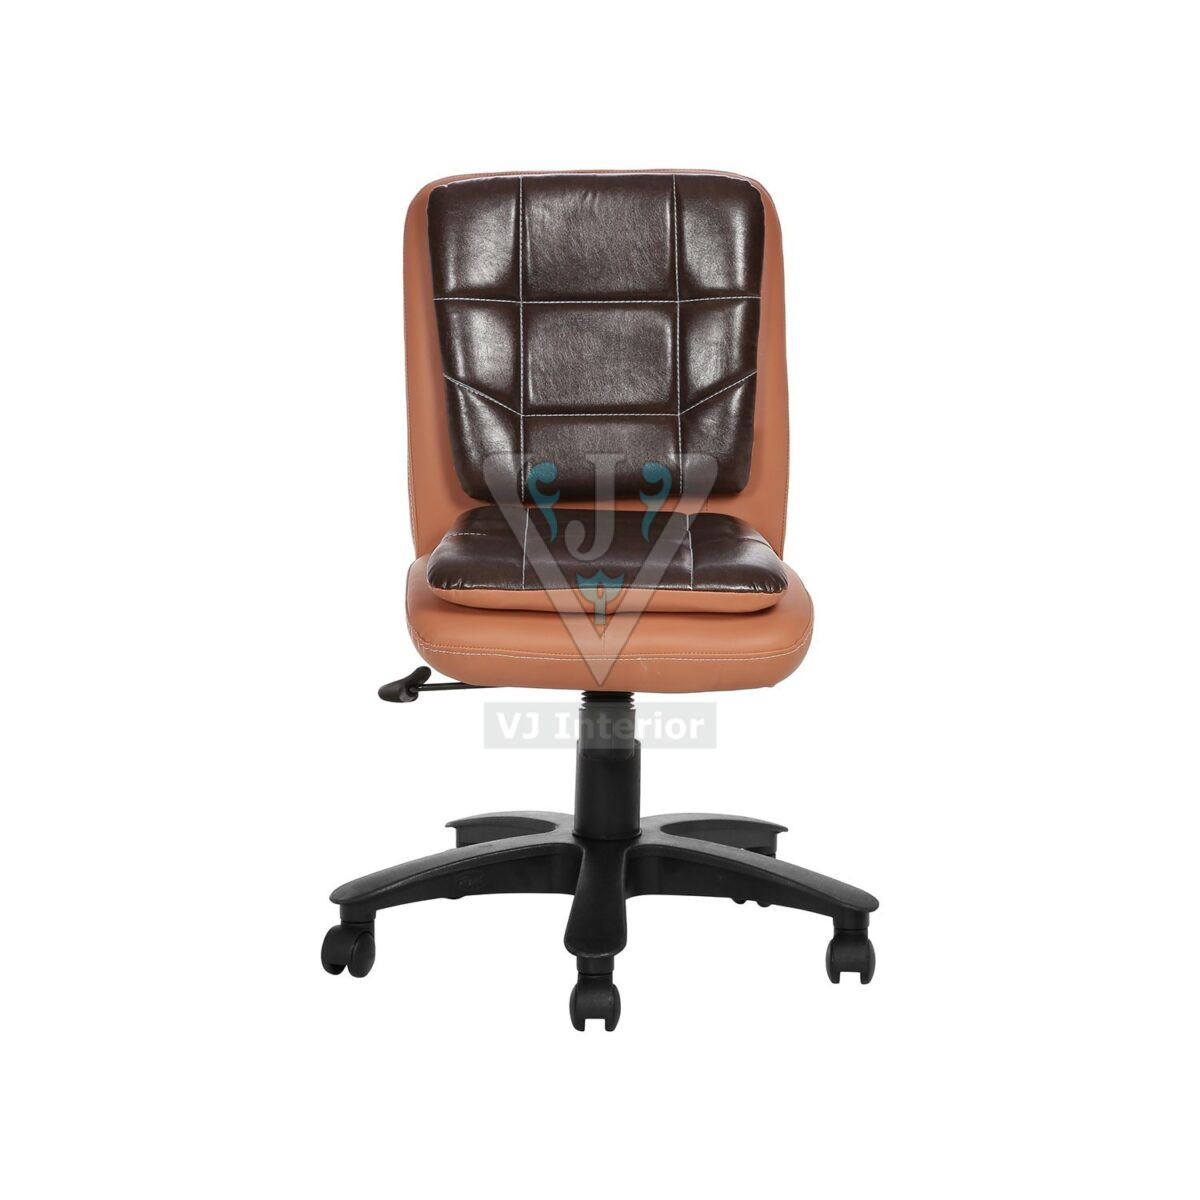 THE LIBRANEJAR LB WORKSTAION CHAIR COPPER AND BROWN